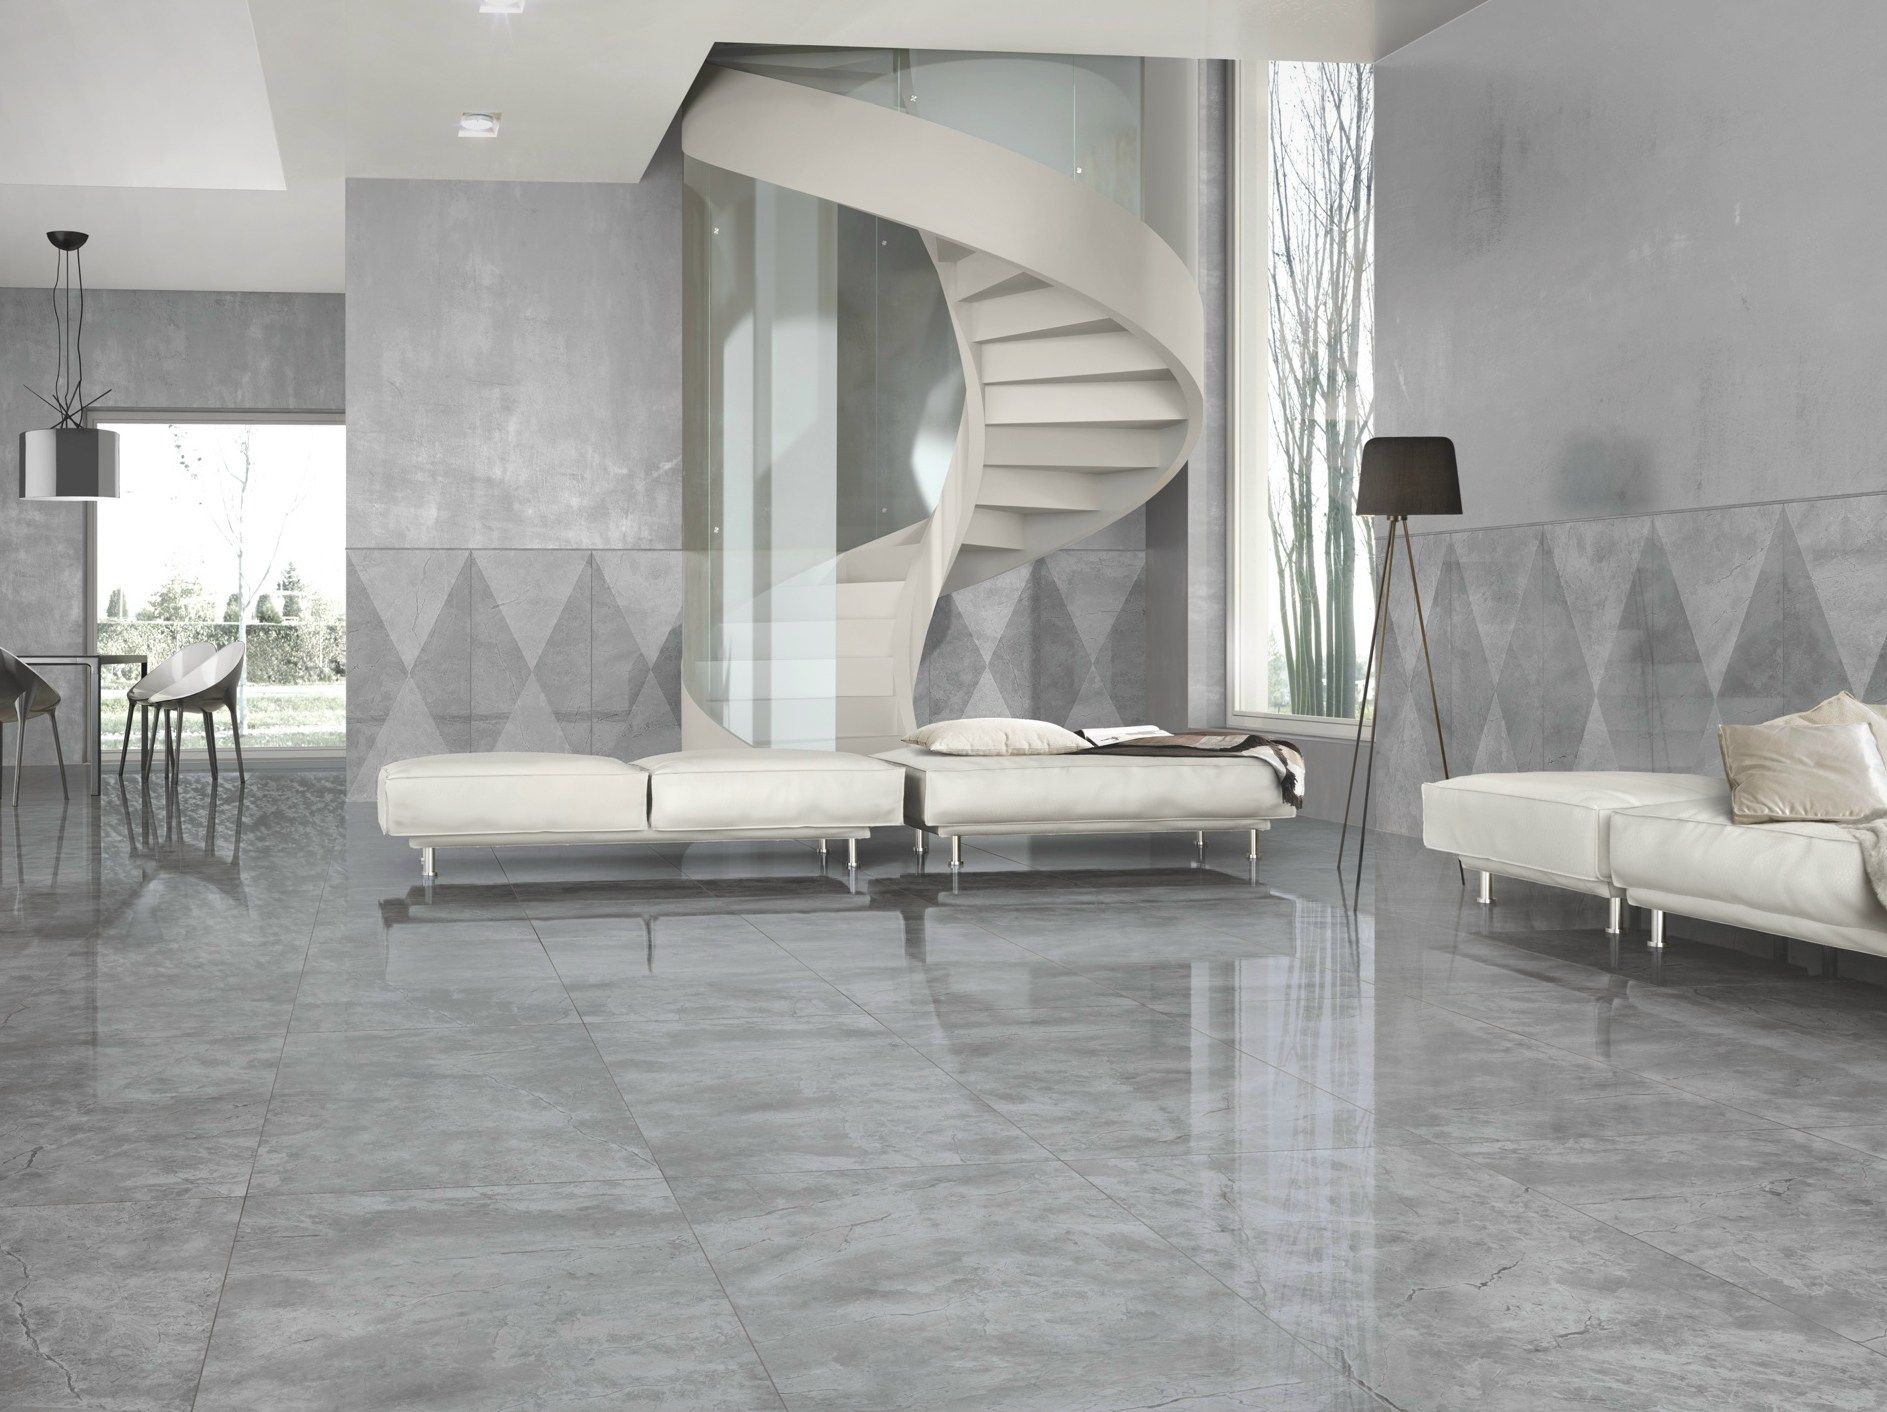 Porcelain stoneware wallfloor tiles with marble effect marmoker porcelain stoneware wallfloor tiles with marble effect marmoker by casalgrande padana dailygadgetfo Image collections